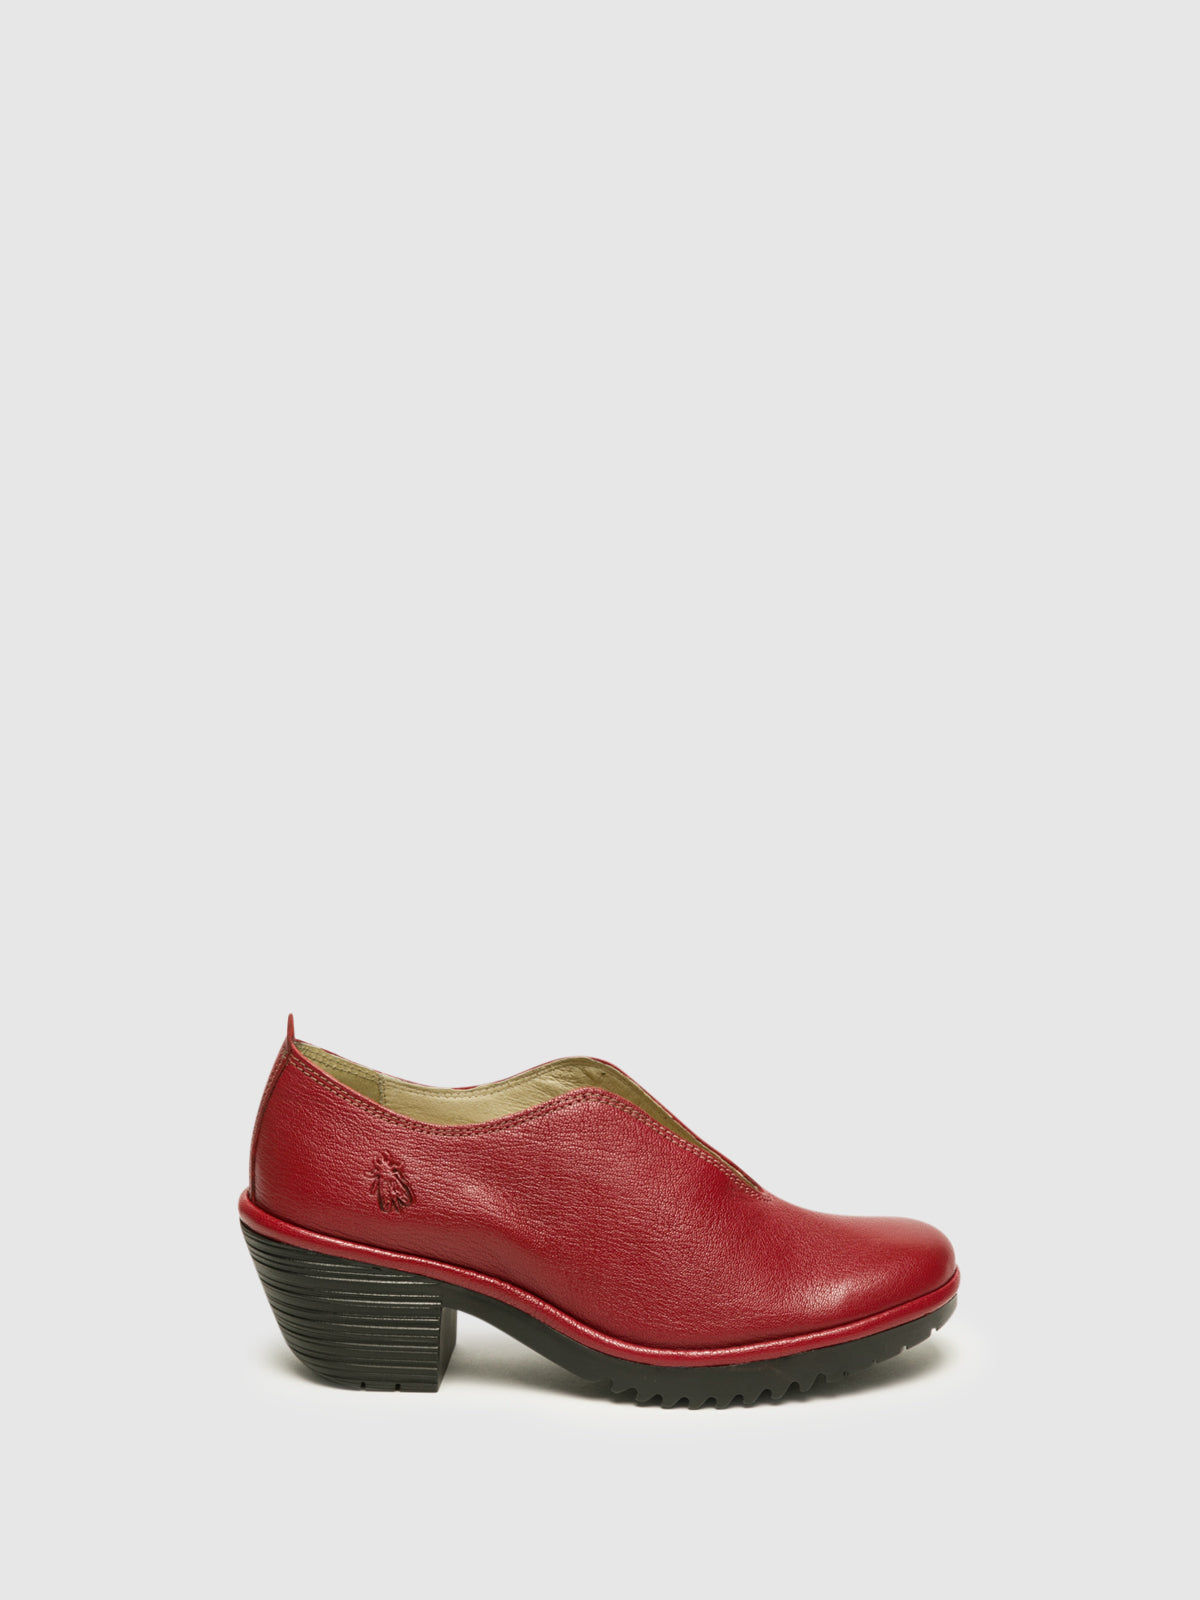 Fly London Schuhe mit runder Kappe in Rot